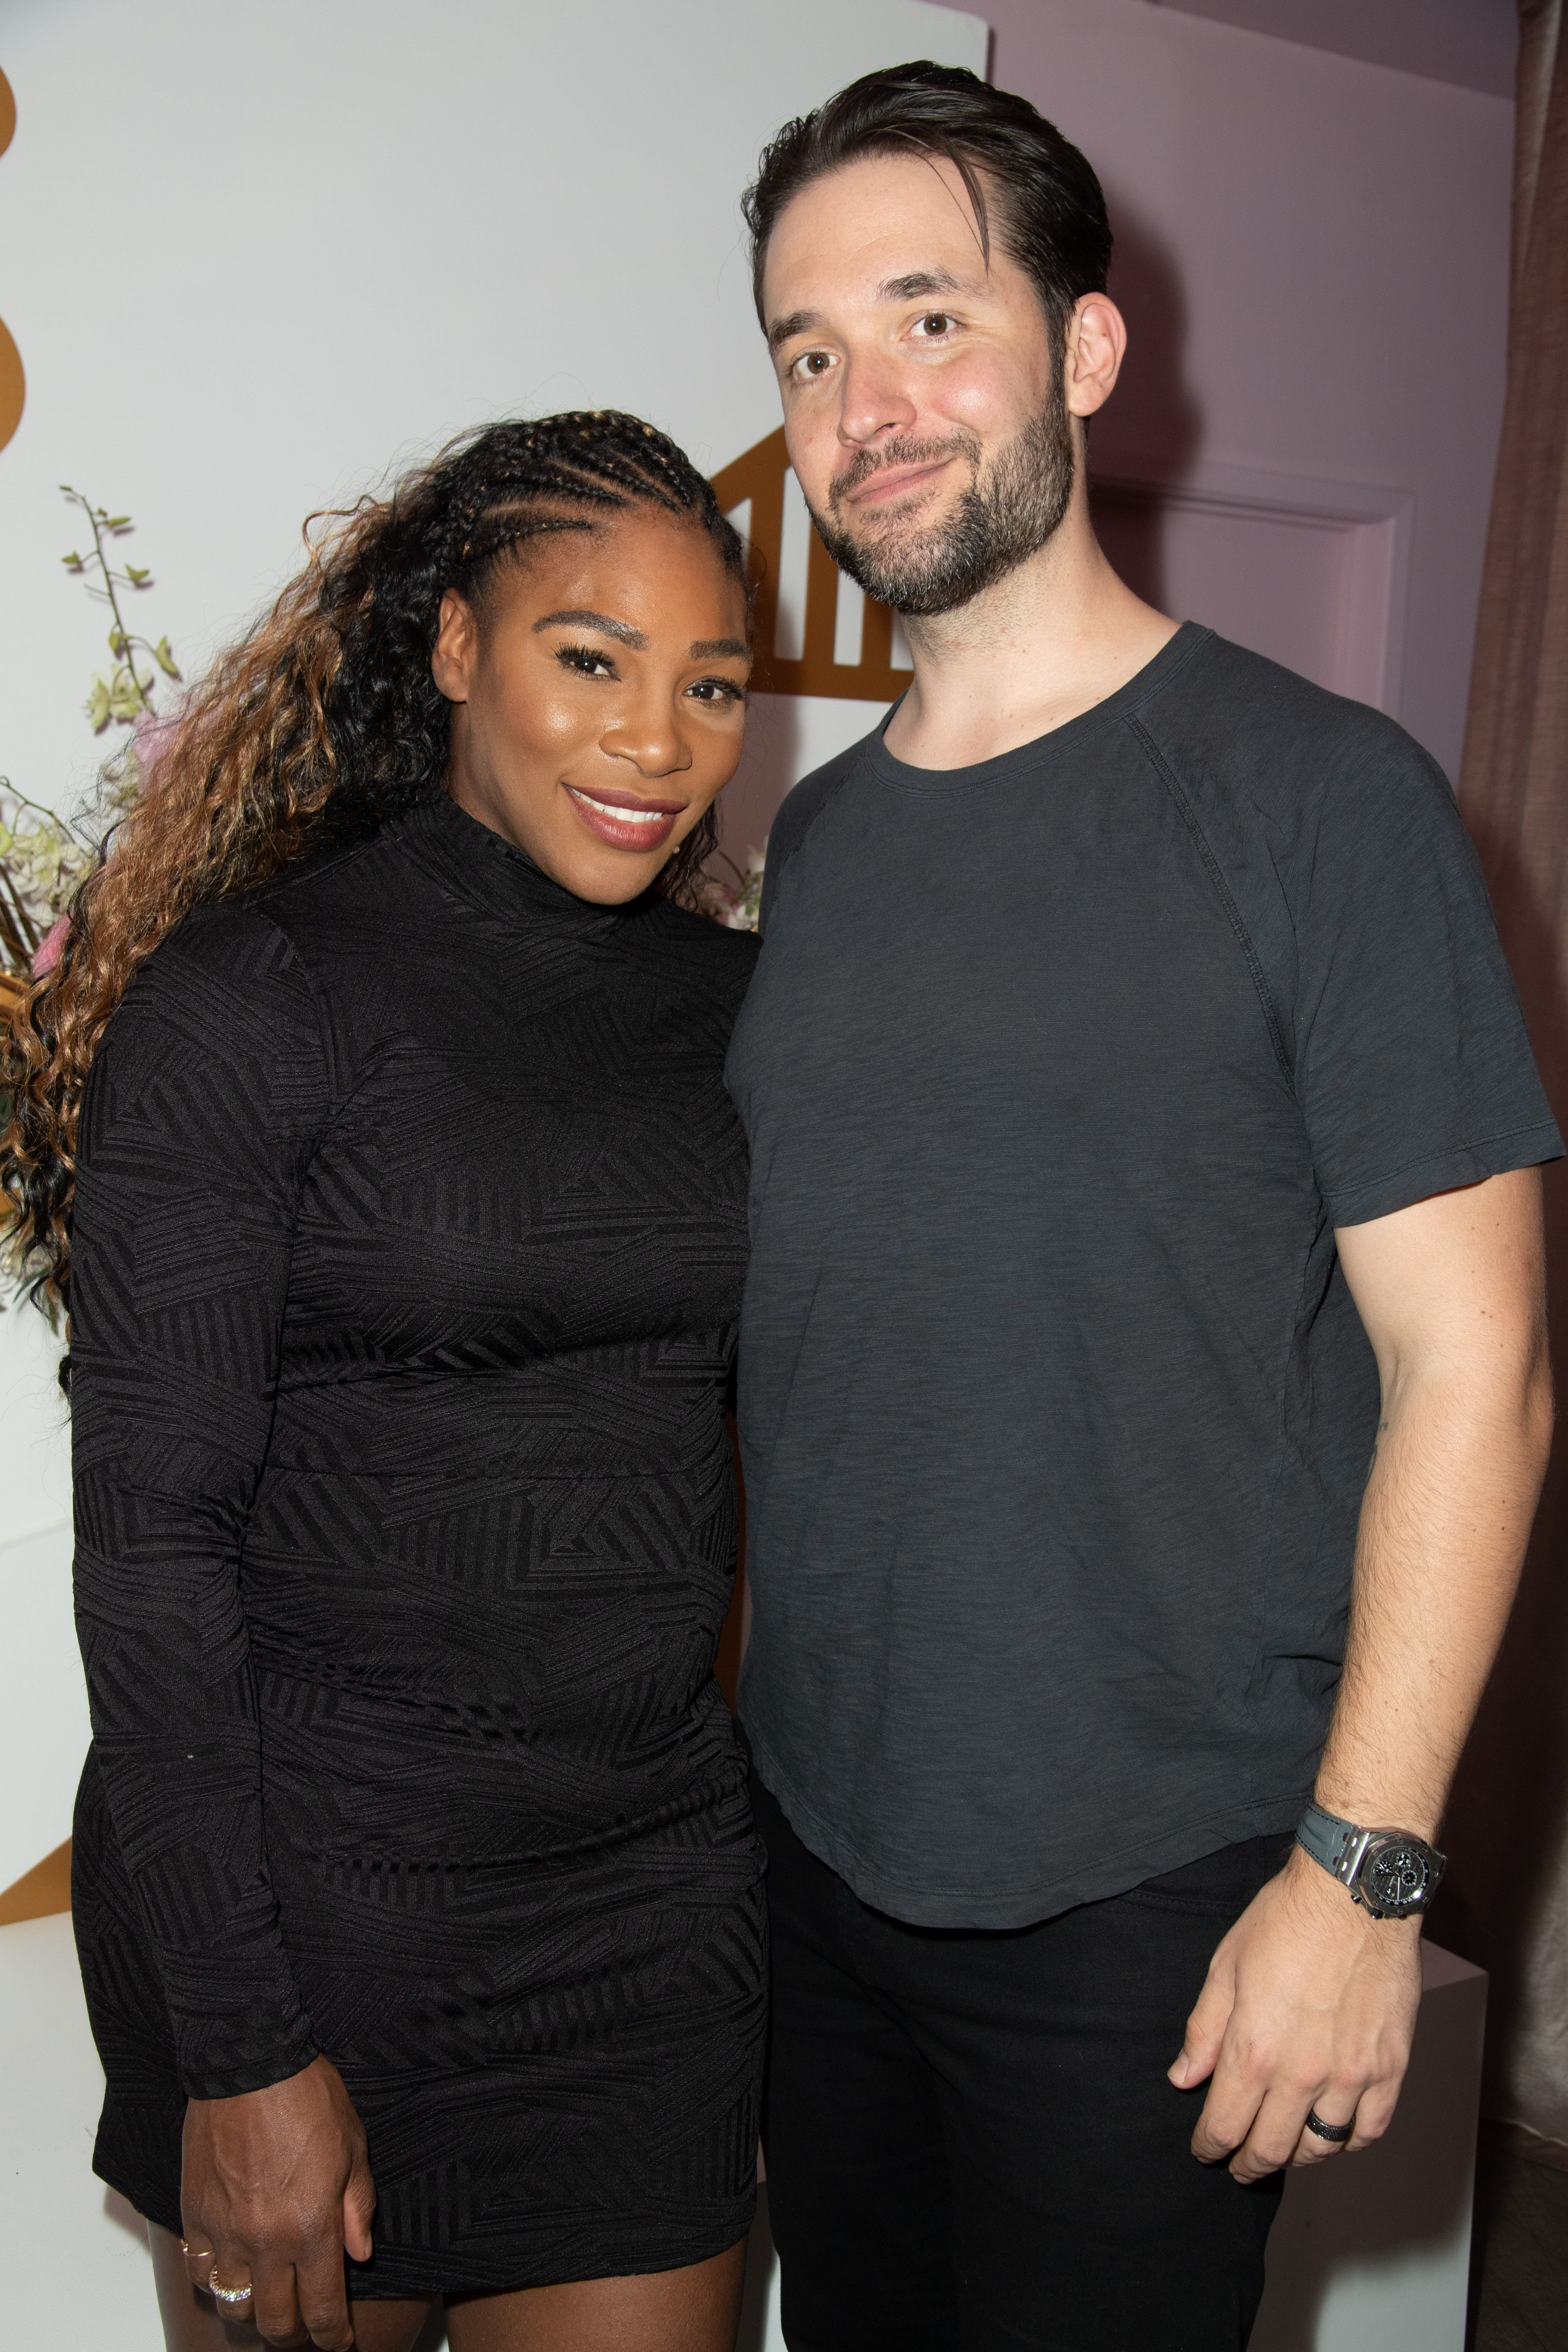 Serena Williams and Alexis Ohanian at The Serena Collection Pop-Up VIP Reception on November 30, 2018 in Los Angeles, California   Photo: Getty Images